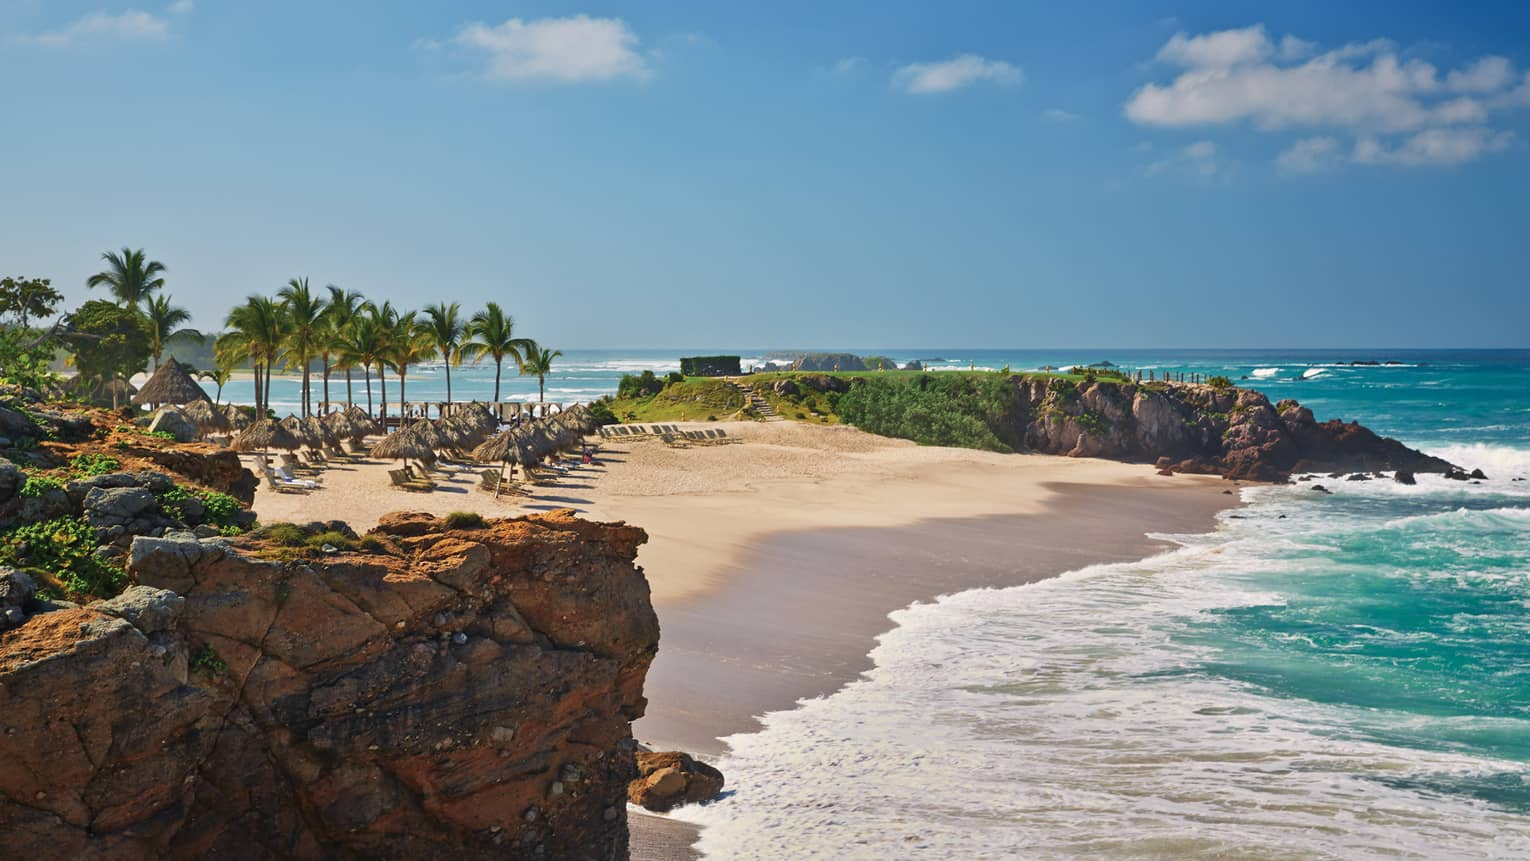 White sand beach lined with lounge chairs, palms, turquoise tides from oceanside cliff